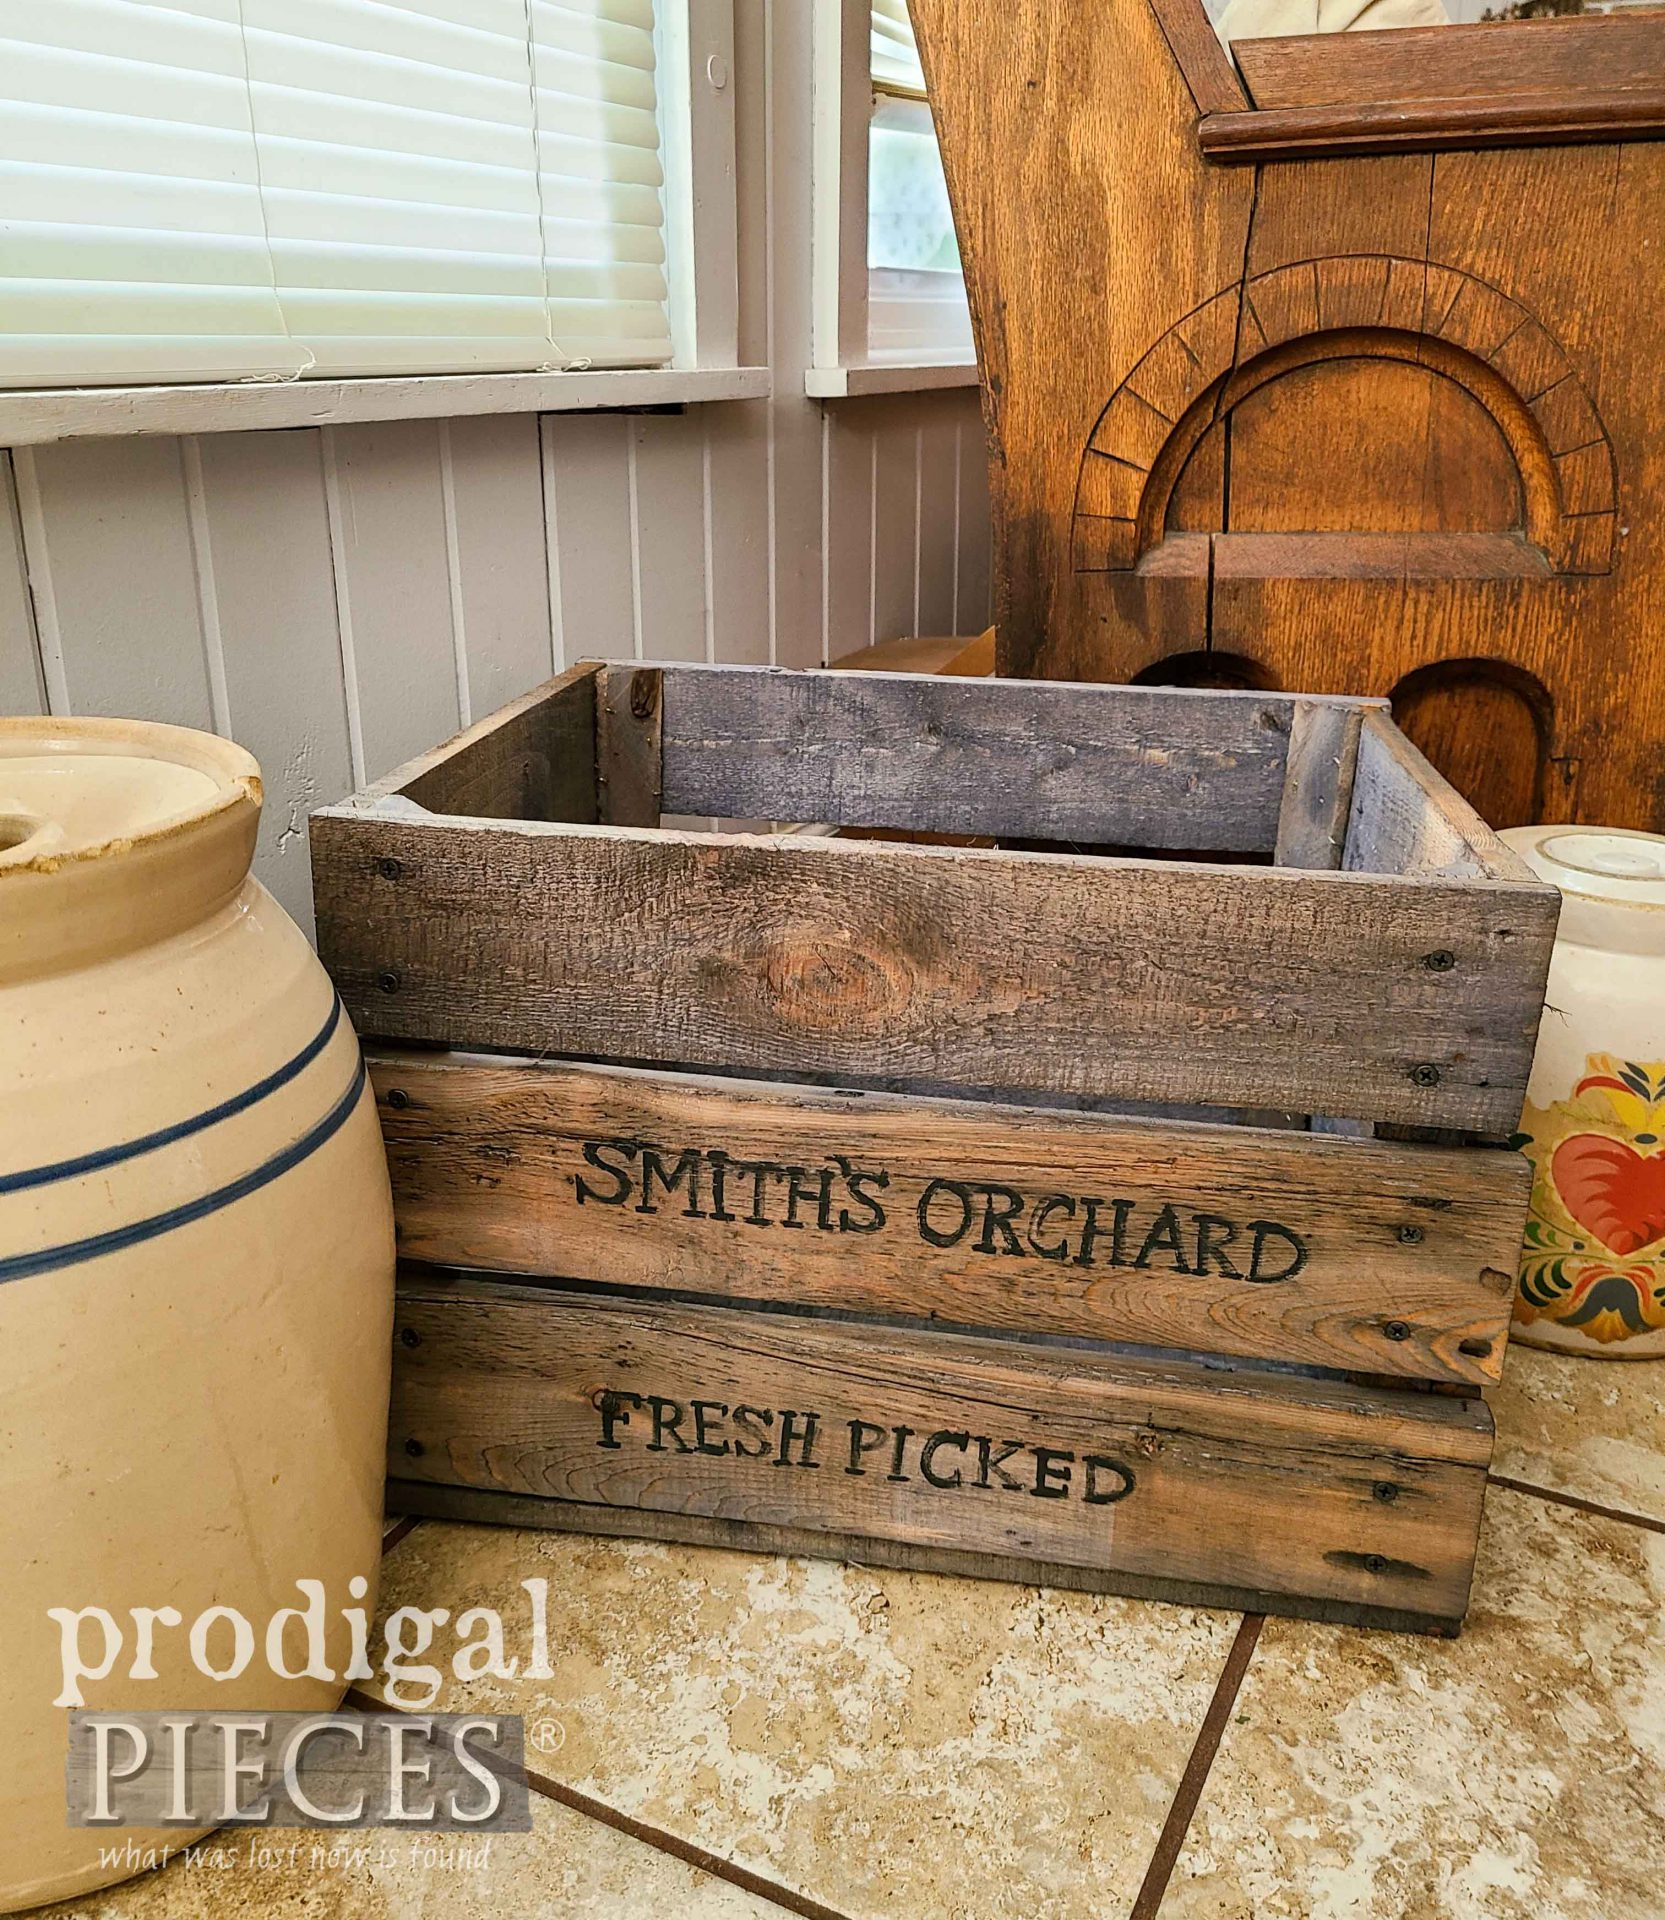 Reclaimed Pallet DIY Antique Crate Made by Larissa of Prodigal Pieces | prodigalpieces.com #prodigalpieces #farmhouse #diy #upcycled